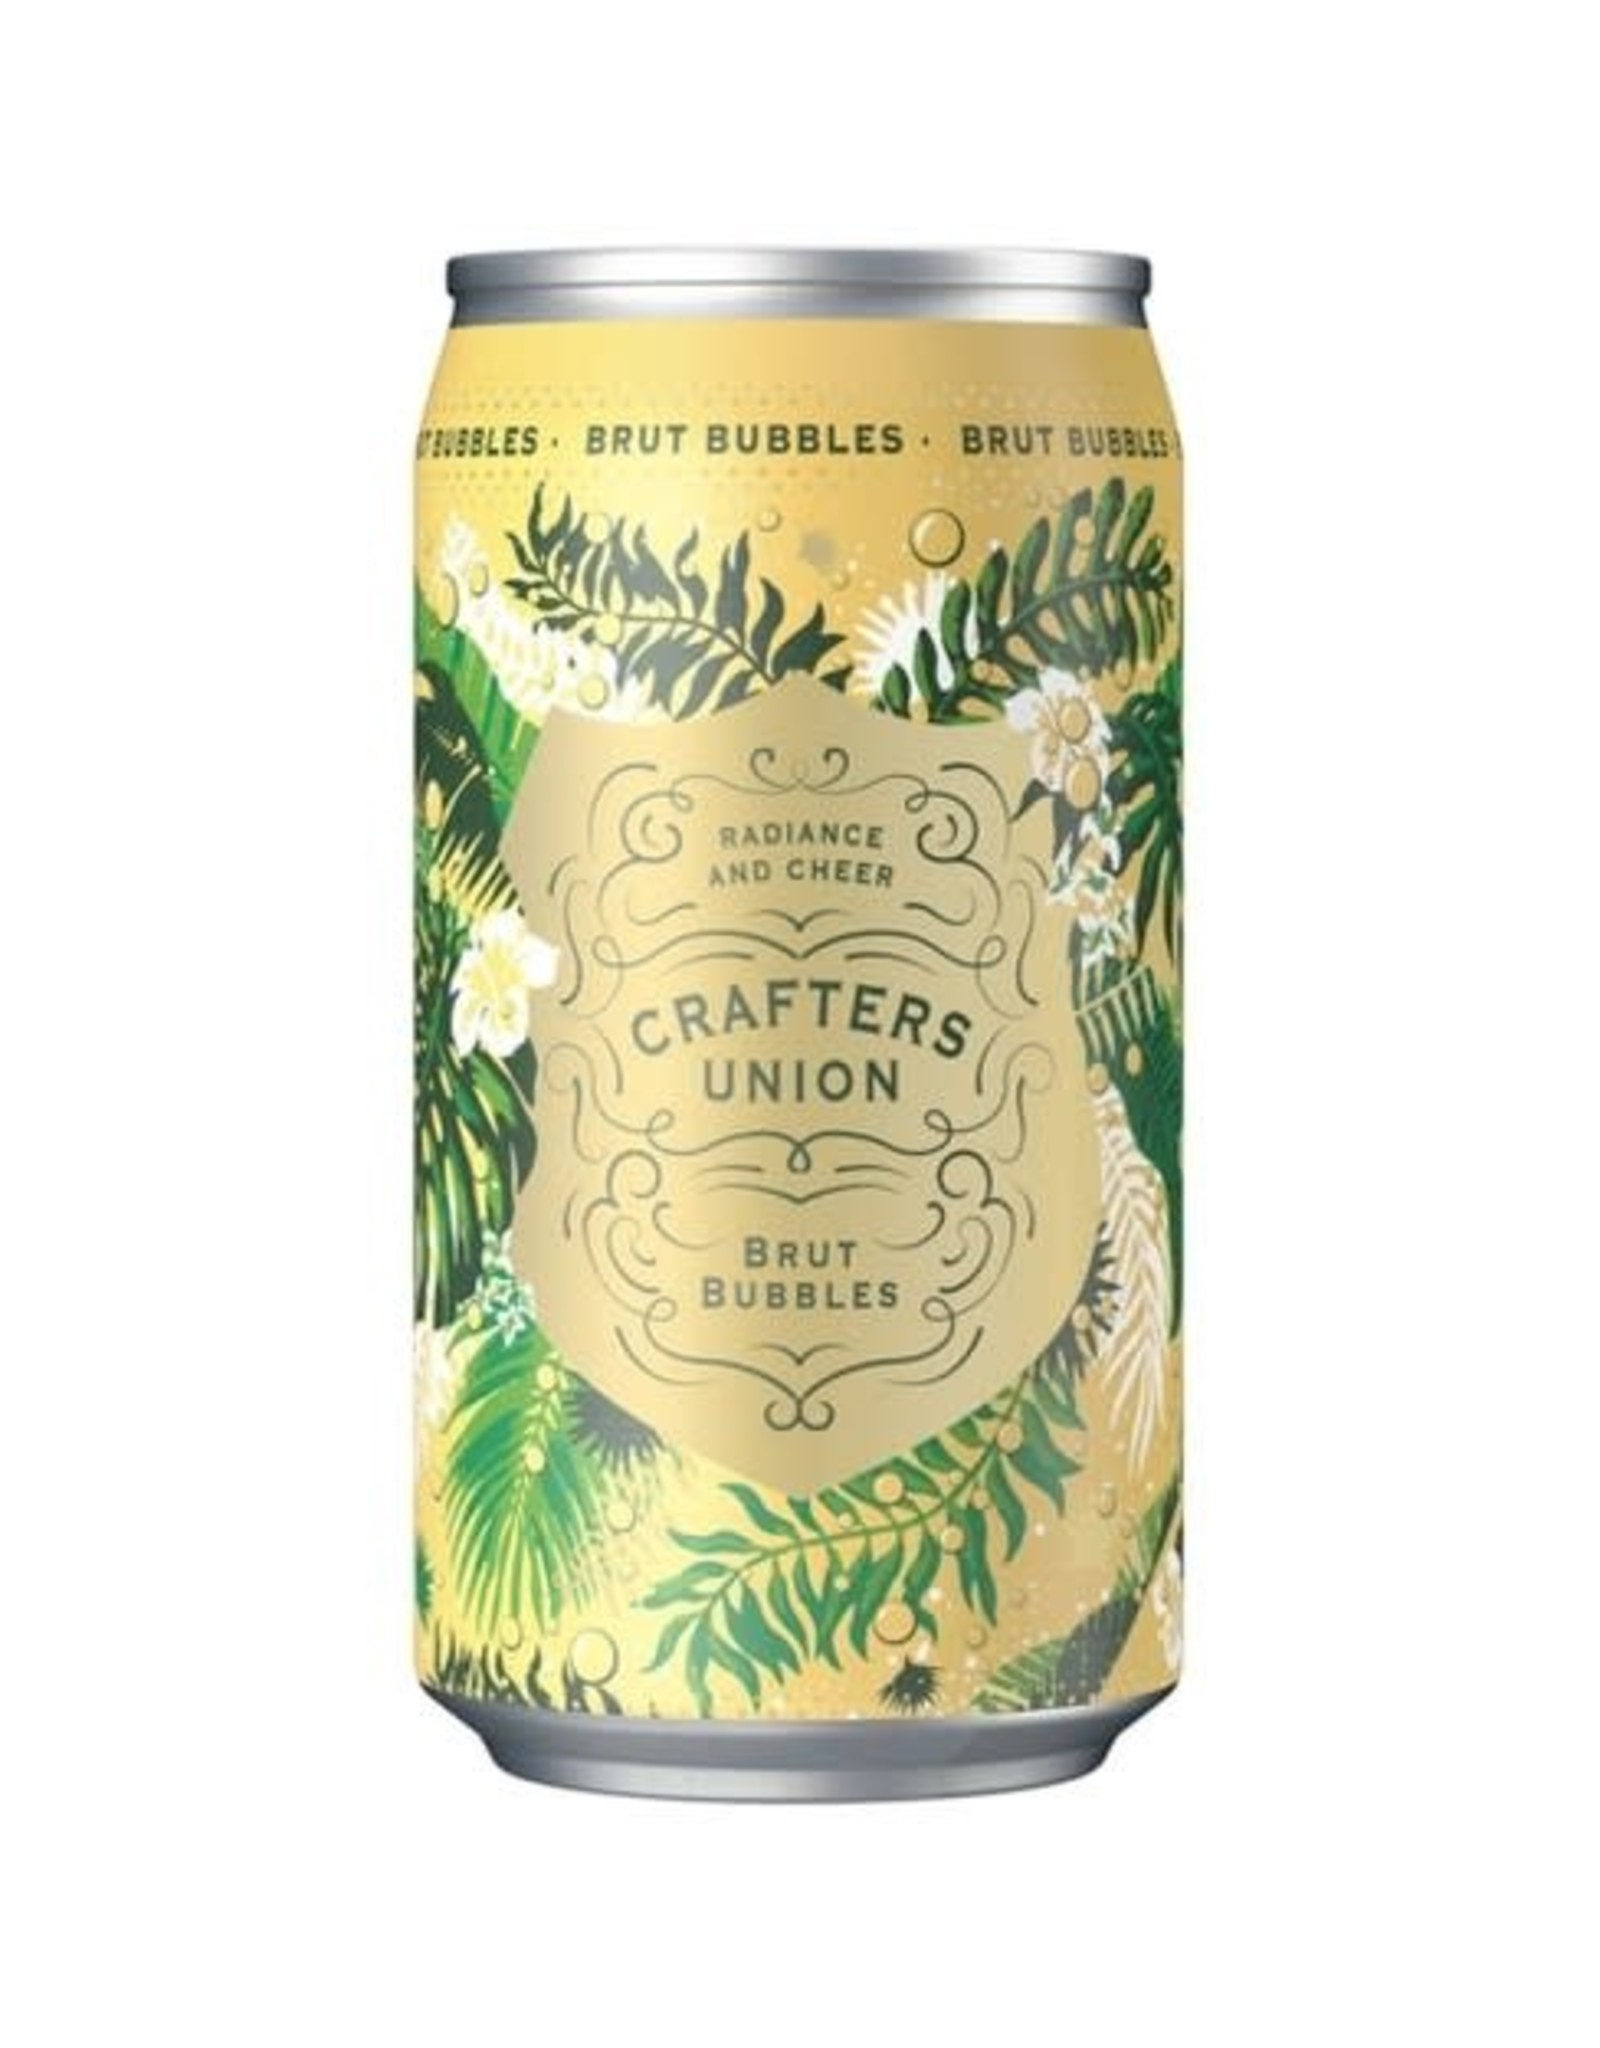 Crafters Union Brut Bubbles 375ml can